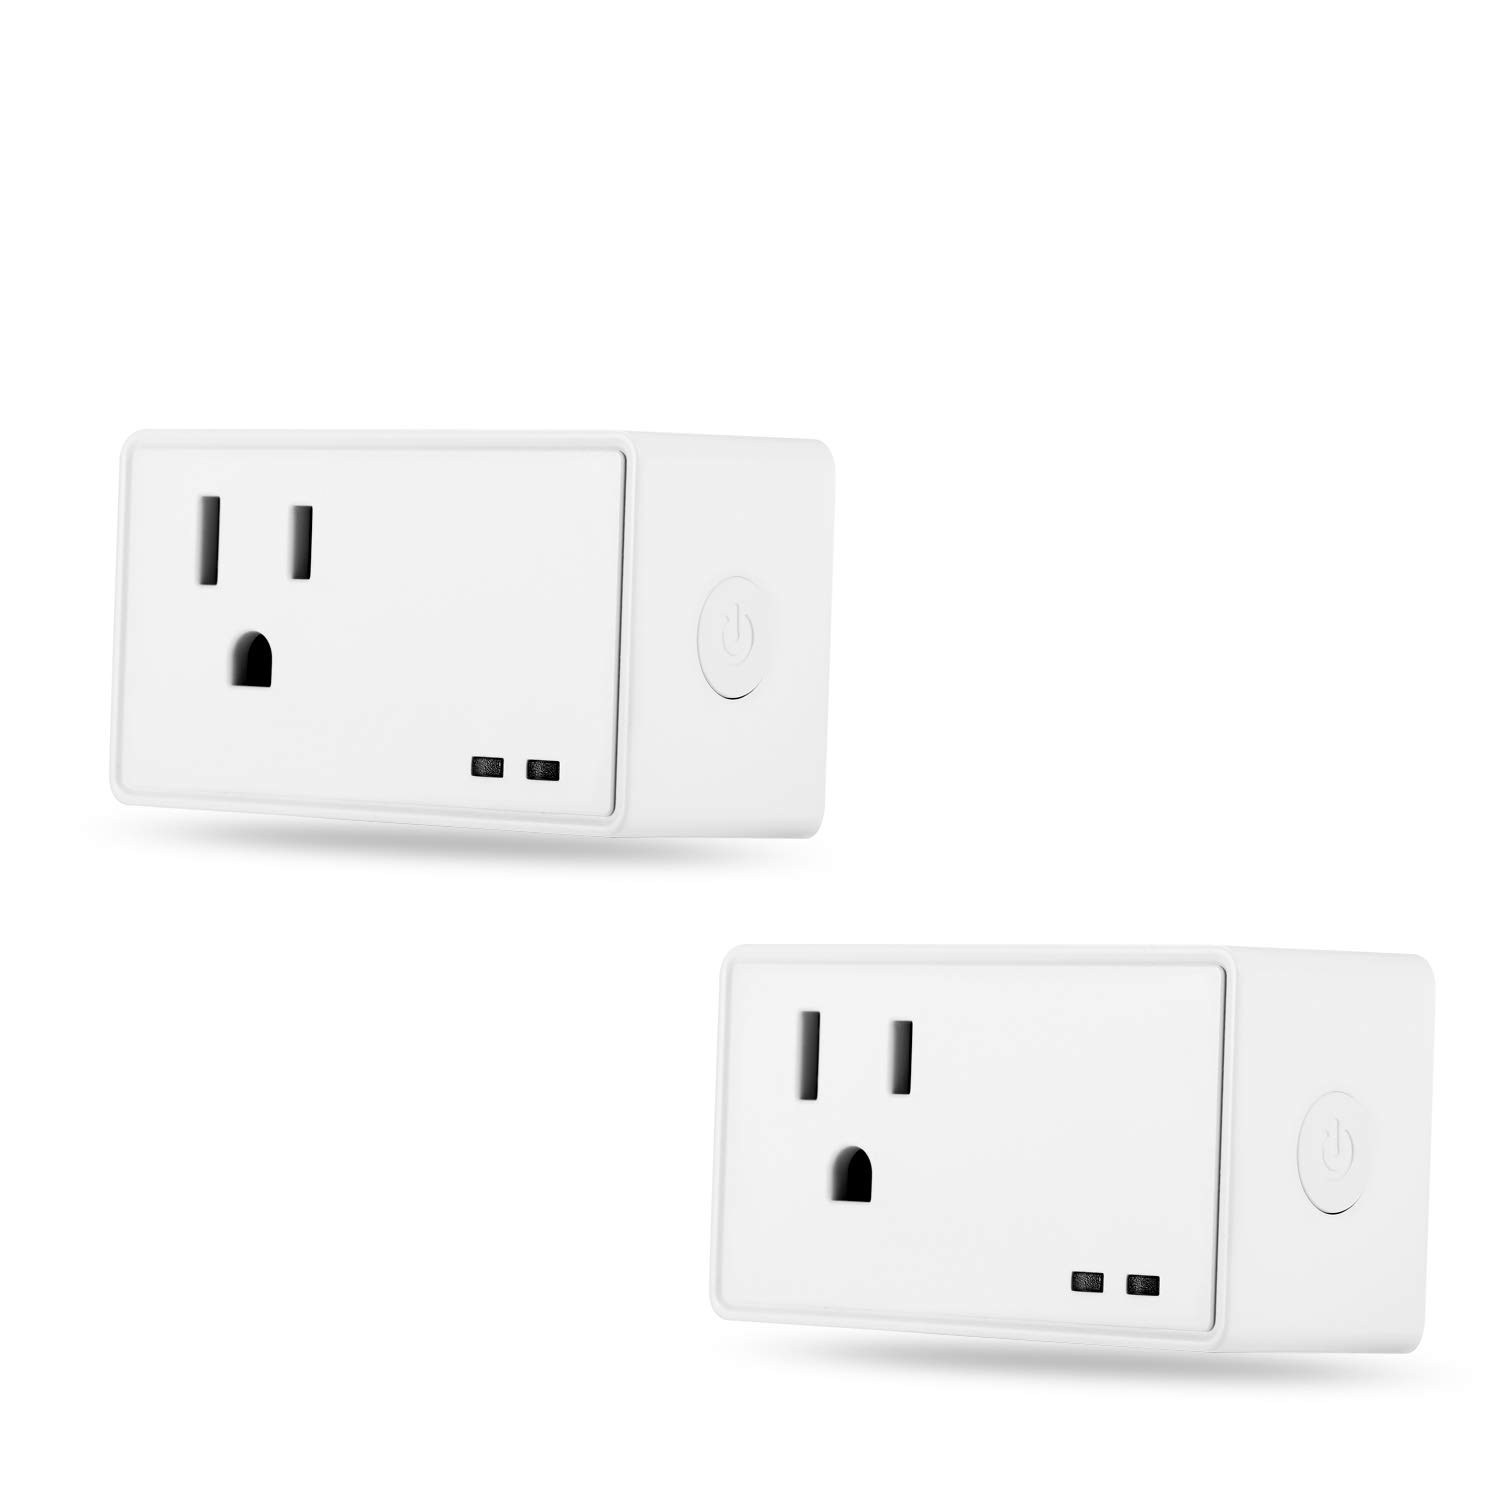 Smart Socket Wifi Plug Outlet Alex Google Home Plug Control your Devices from Anywhere, Power Switch,No Hub Required (2 Packs)